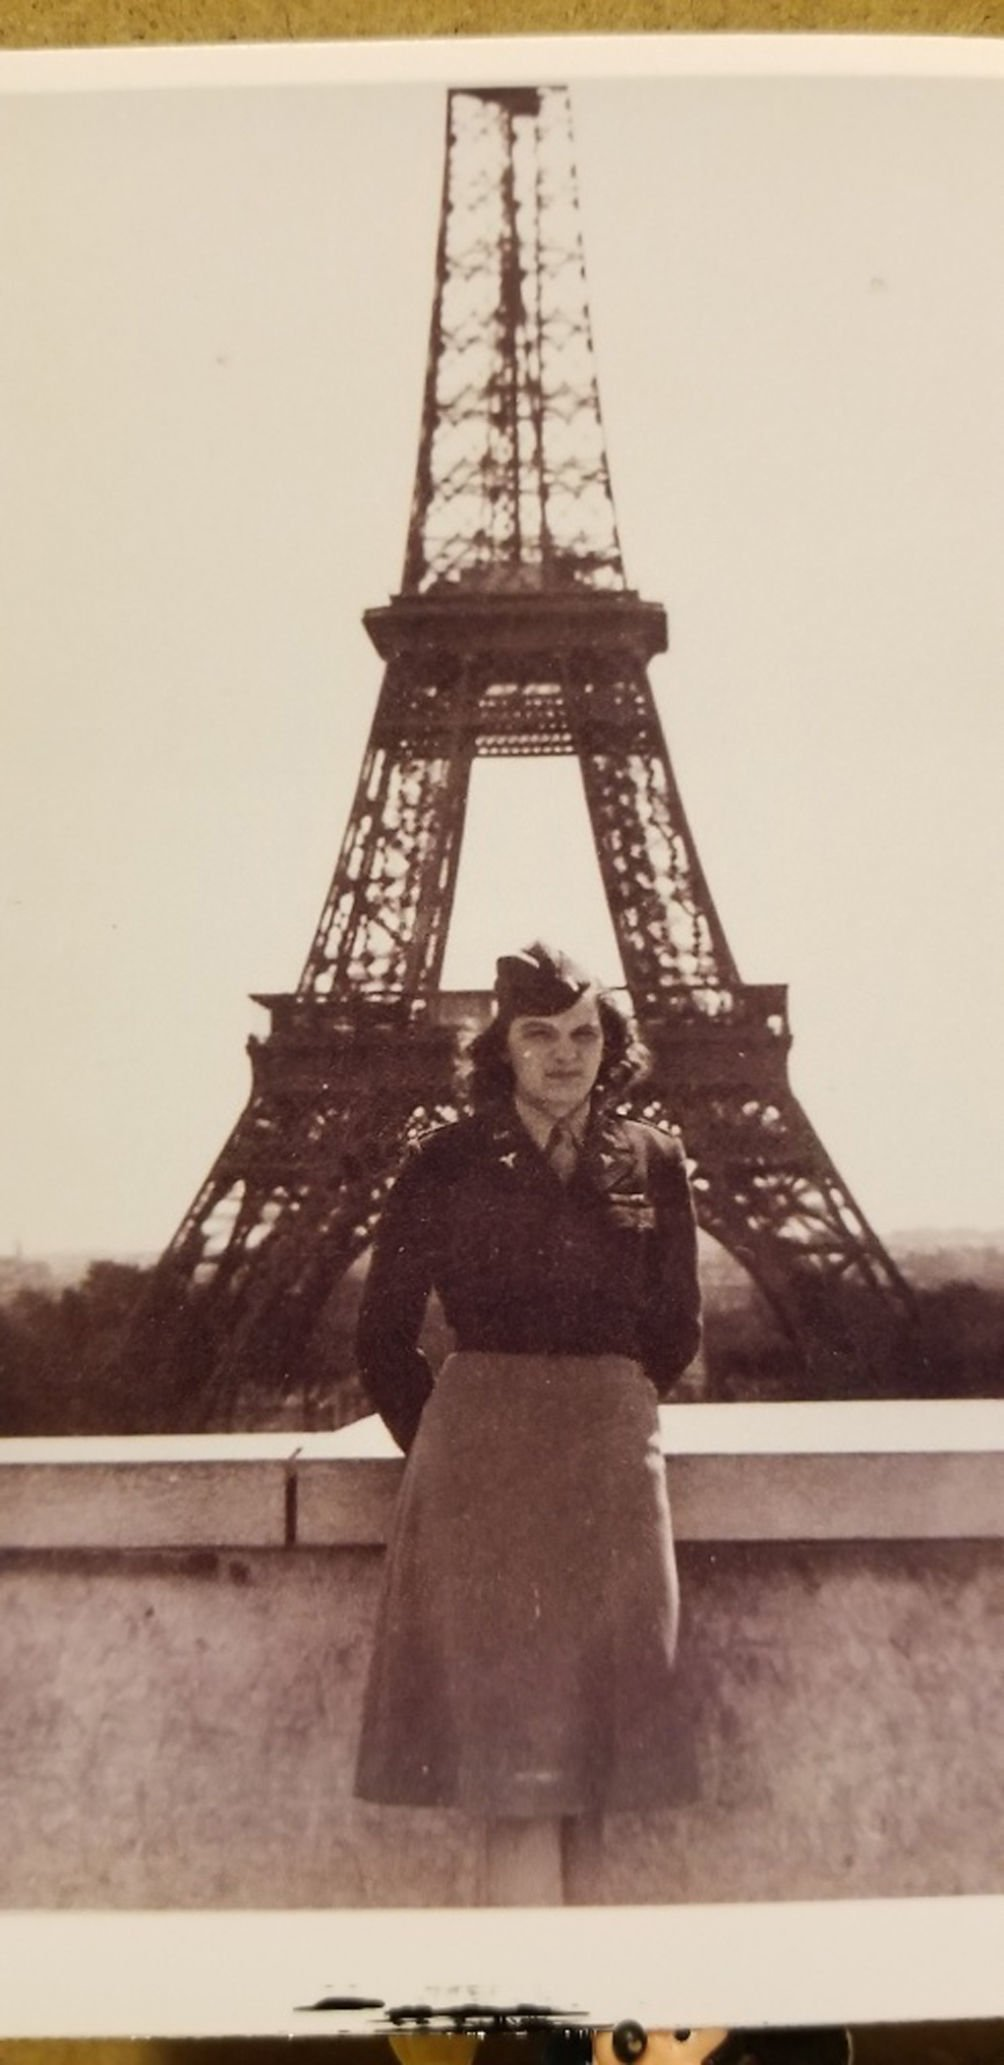 dorothy webbeking in paris.jpg